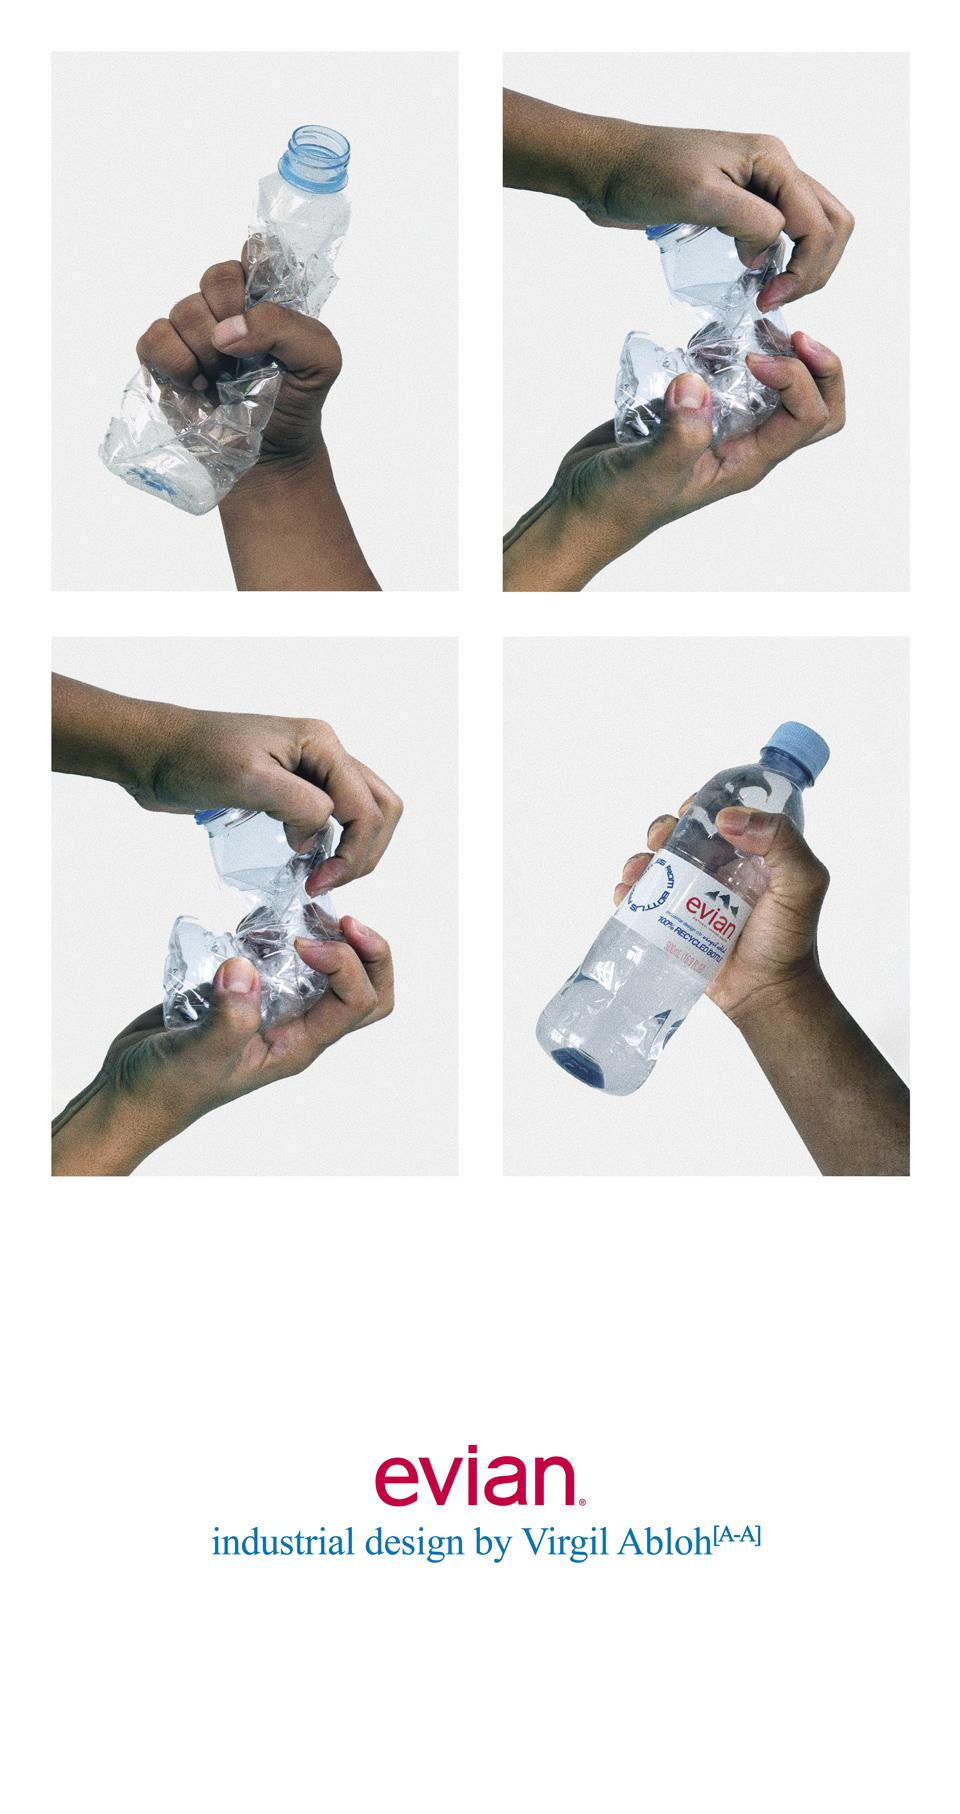 Evian x Virgil Abloh designed a water bottle with a hammered effect.EVIAN